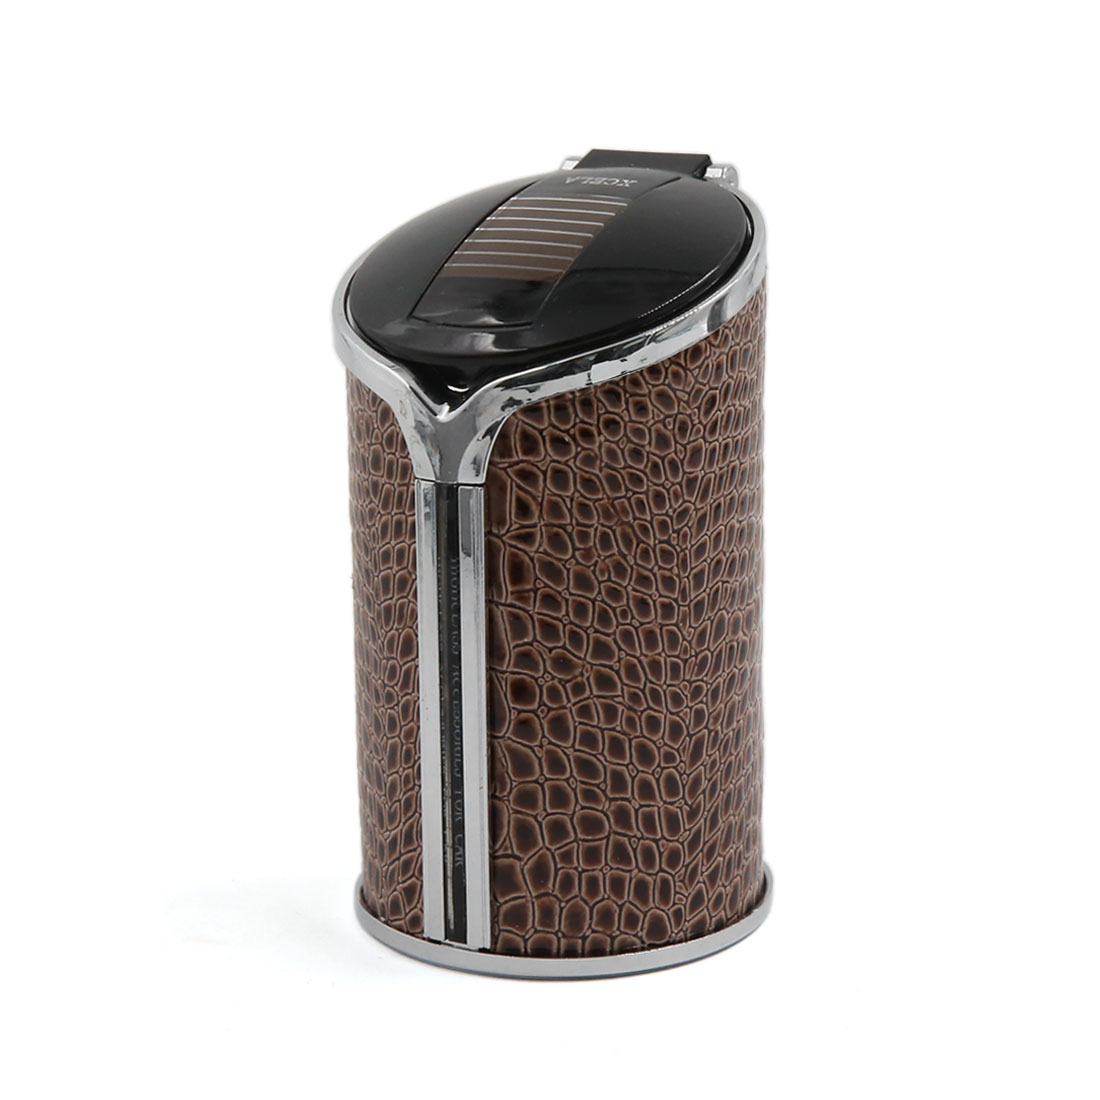 Brown Faux Leather Solar Power Ashtray Cigarette Ash Cylinder Holder Cup for Car